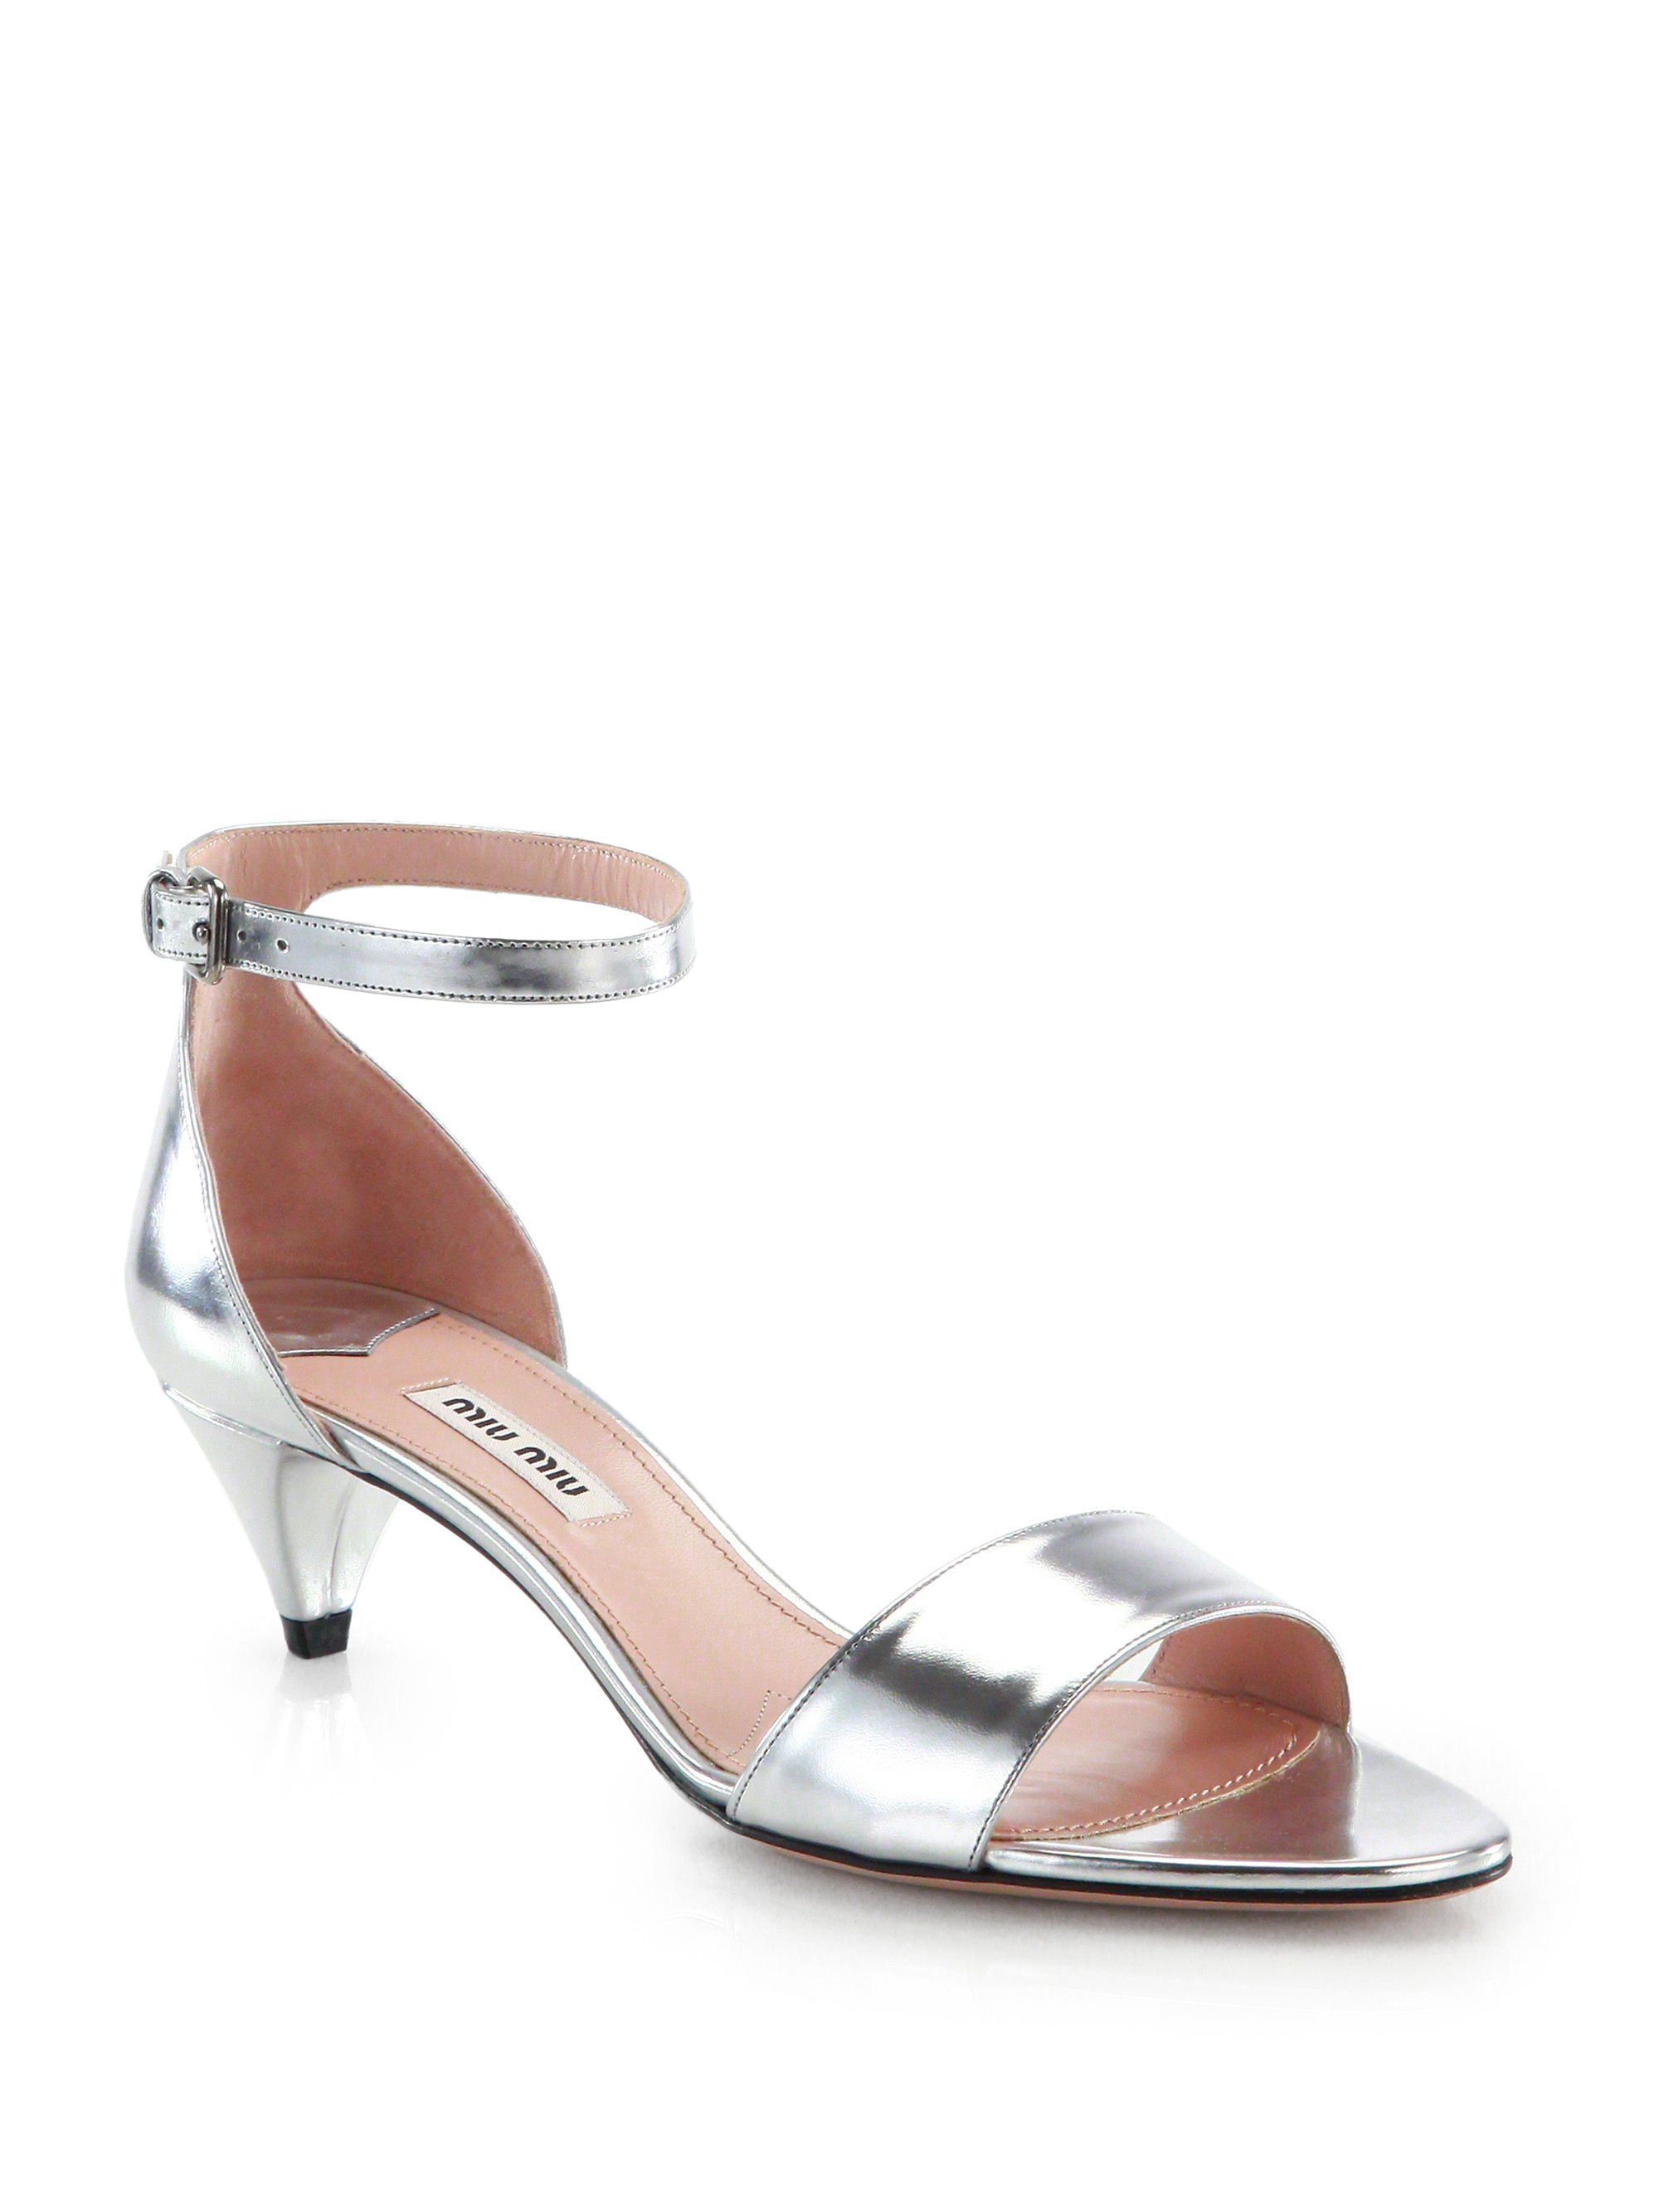 Black High Heels For Women 2017 | Qu Heel - Part 60